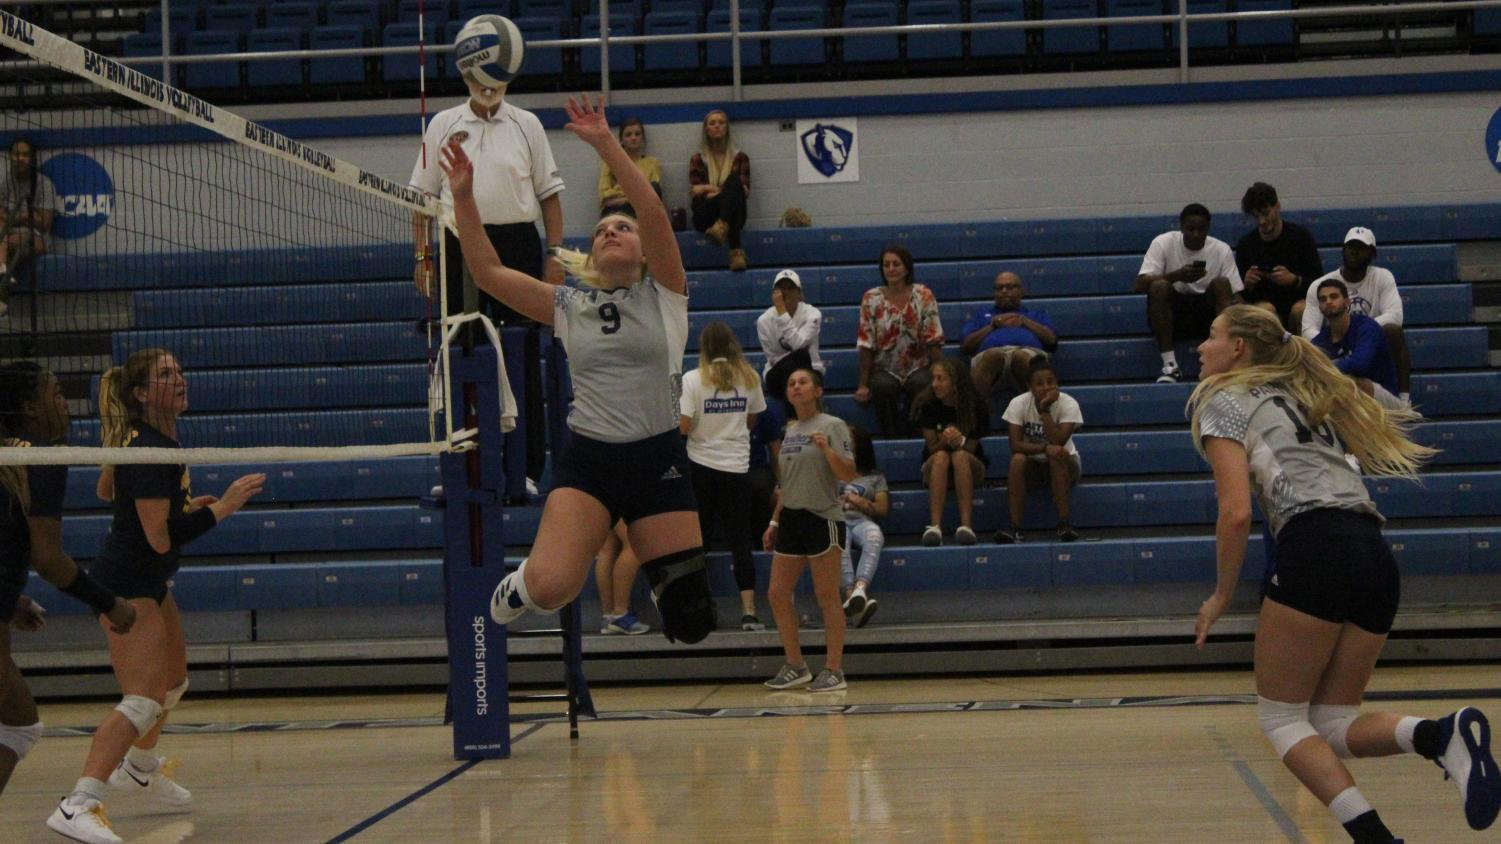 Eastern setter Bailey Chandler guides the ball over the net as teammate Maggie Runge makes her approach in the Panthers' match against Murray State on Sept. 27. Eastern lost the match in straight sets.